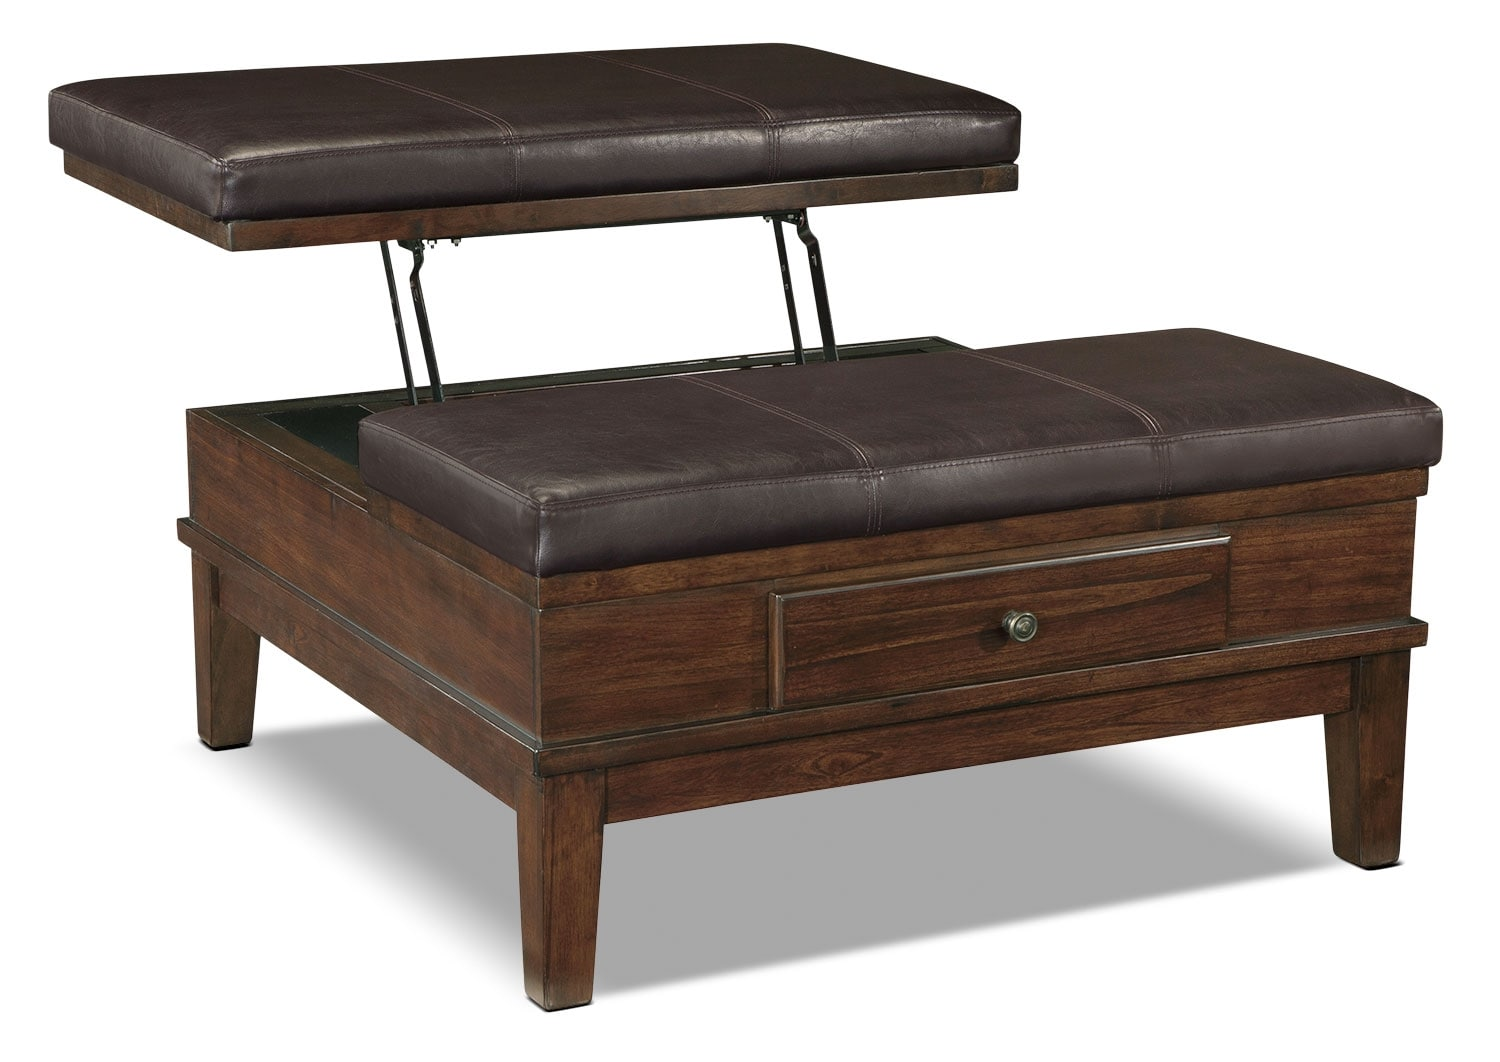 Gately ottoman coffee table with lift top the brick Lifting top coffee table